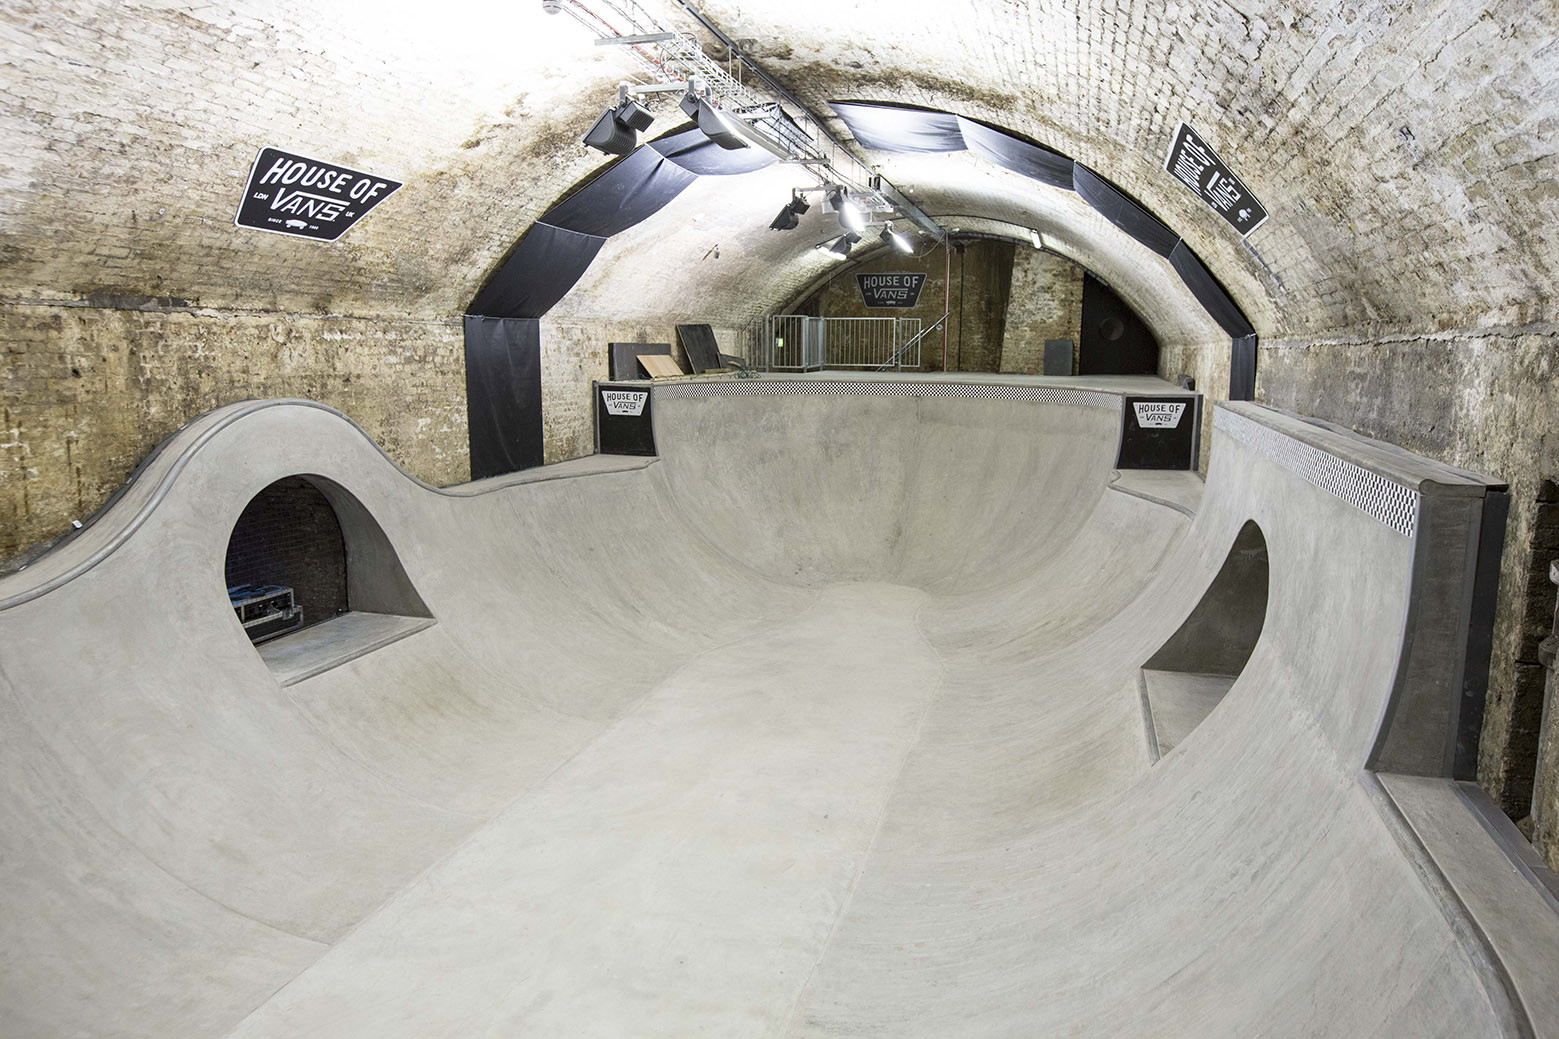 Gallery of house of vans london tim greatrex 7 for Indoor skatepark design uk